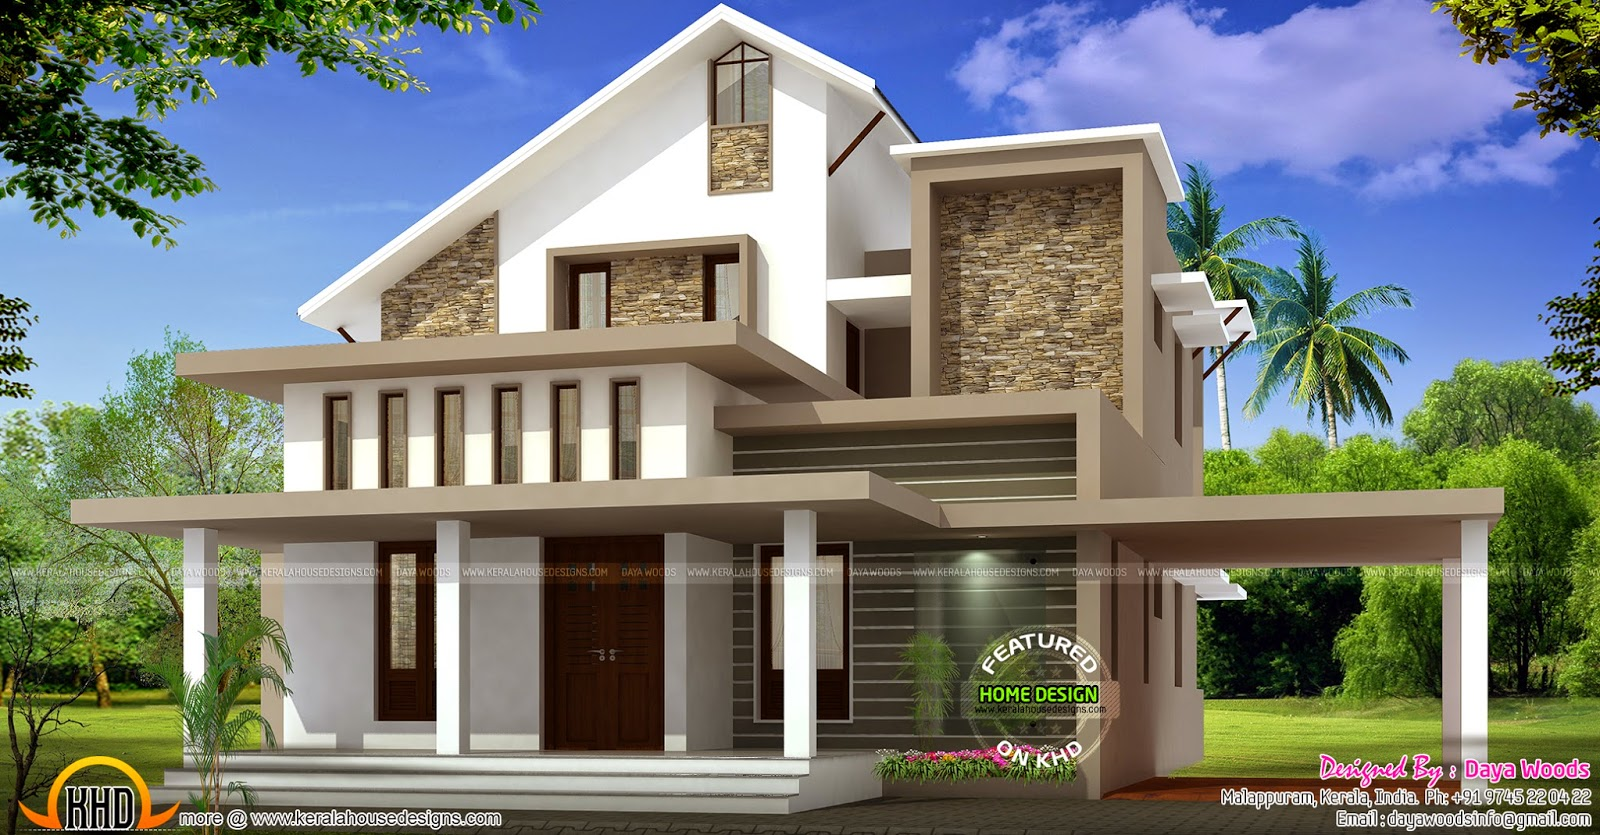 Low budget semi contemporary home kerala home design and for House designs kerala style low cost